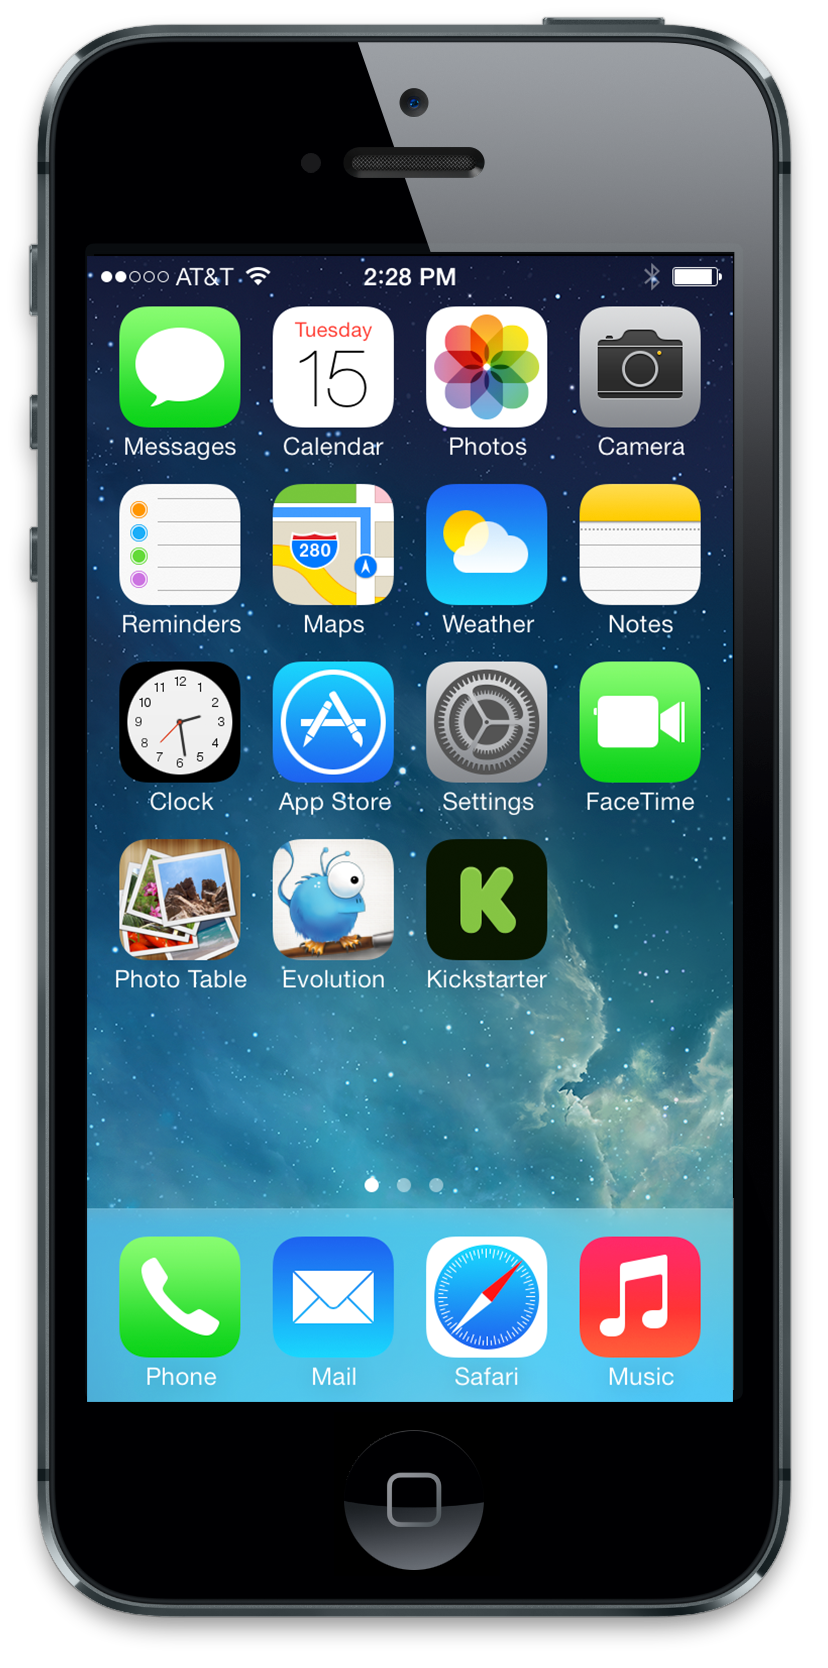 Create your own iPhone apps with Objective-C